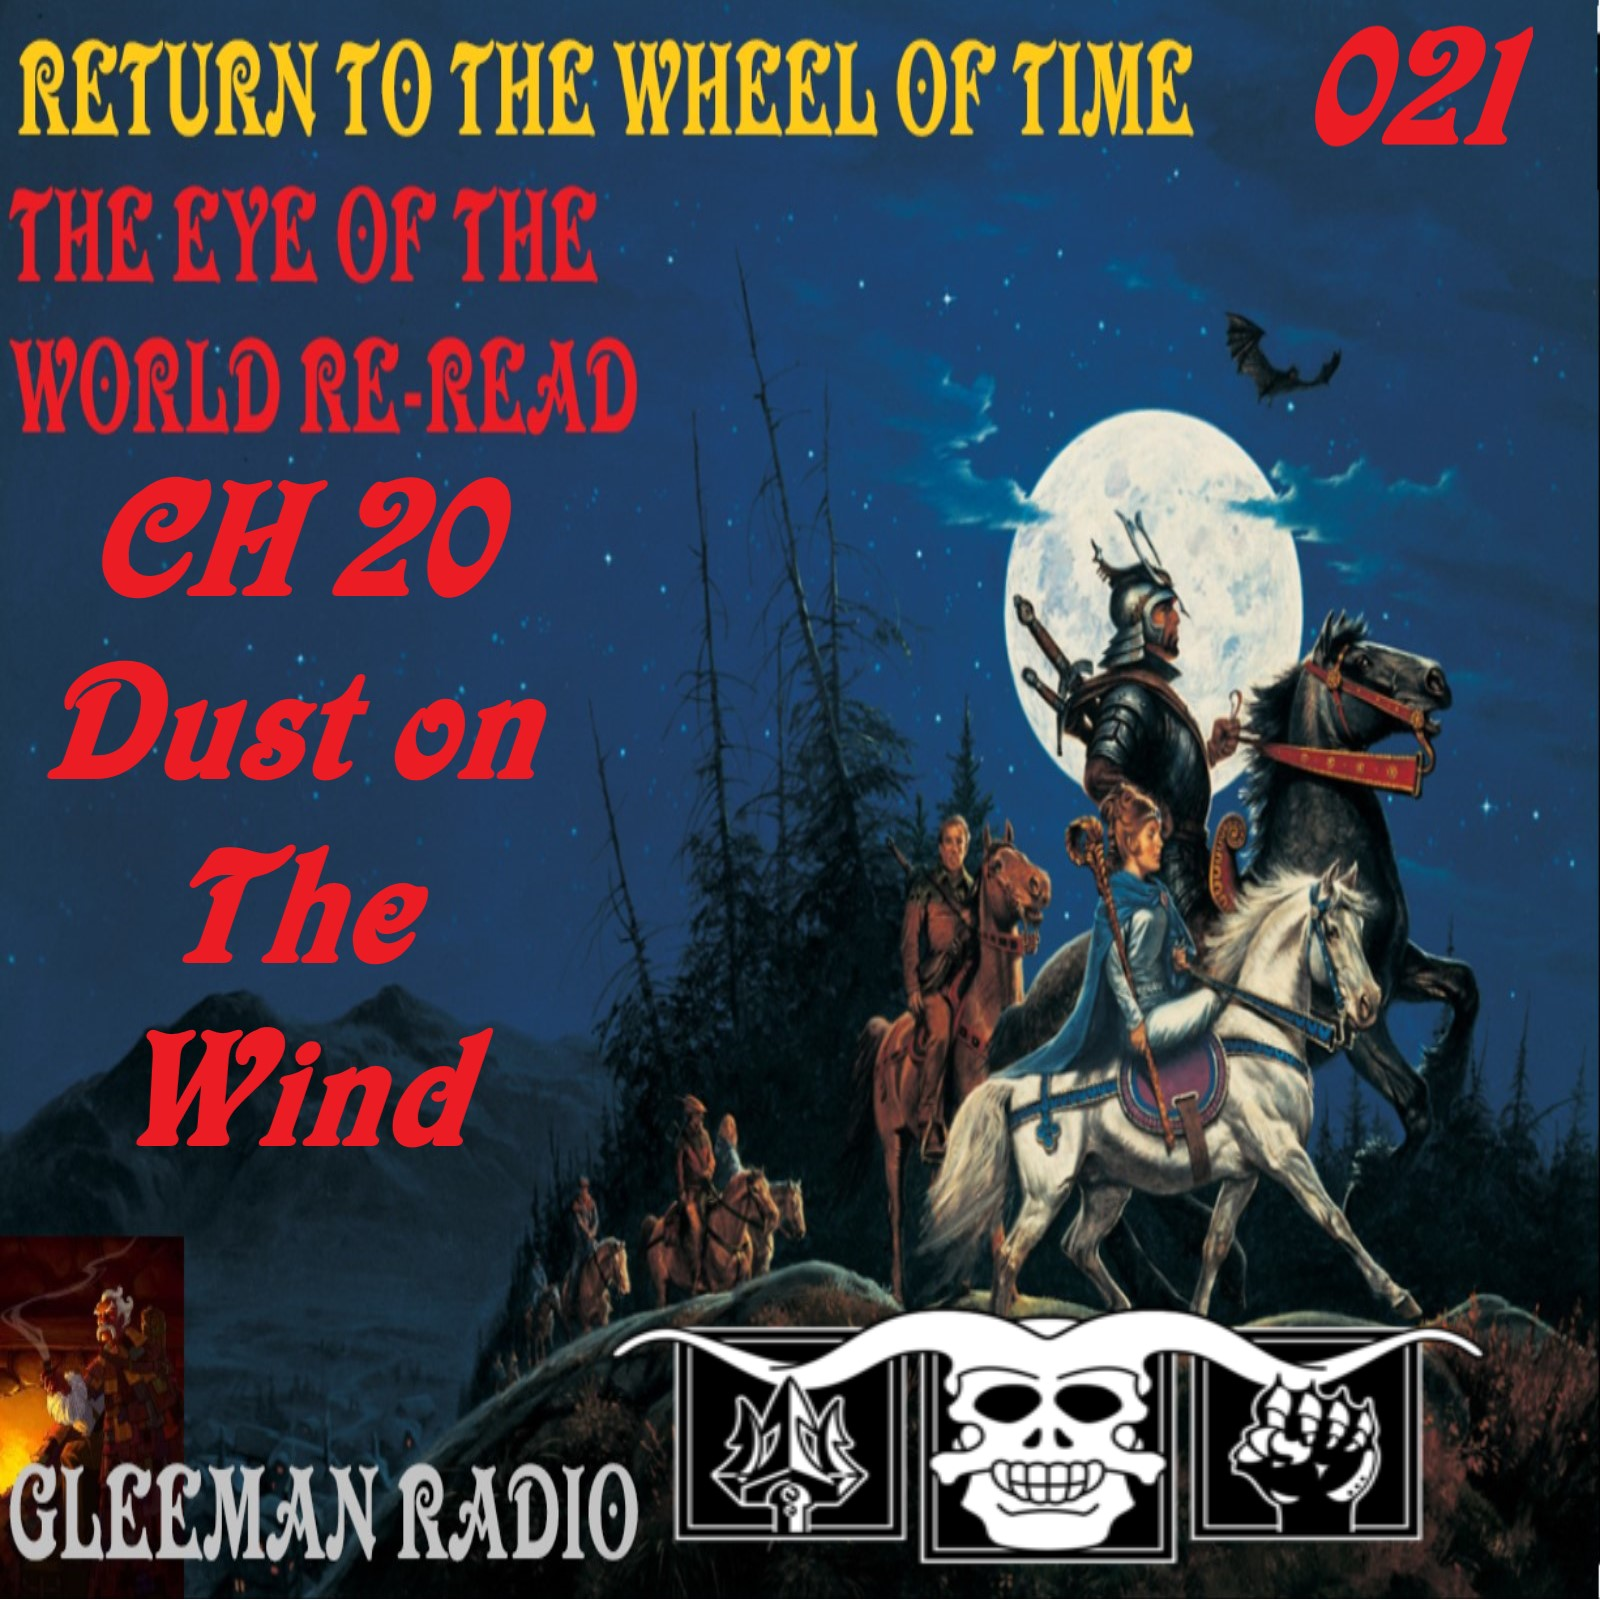 CH 20 - Dust on the Wind - The Eye Of The World ReRead - Return to the wheel of time Ep. 21